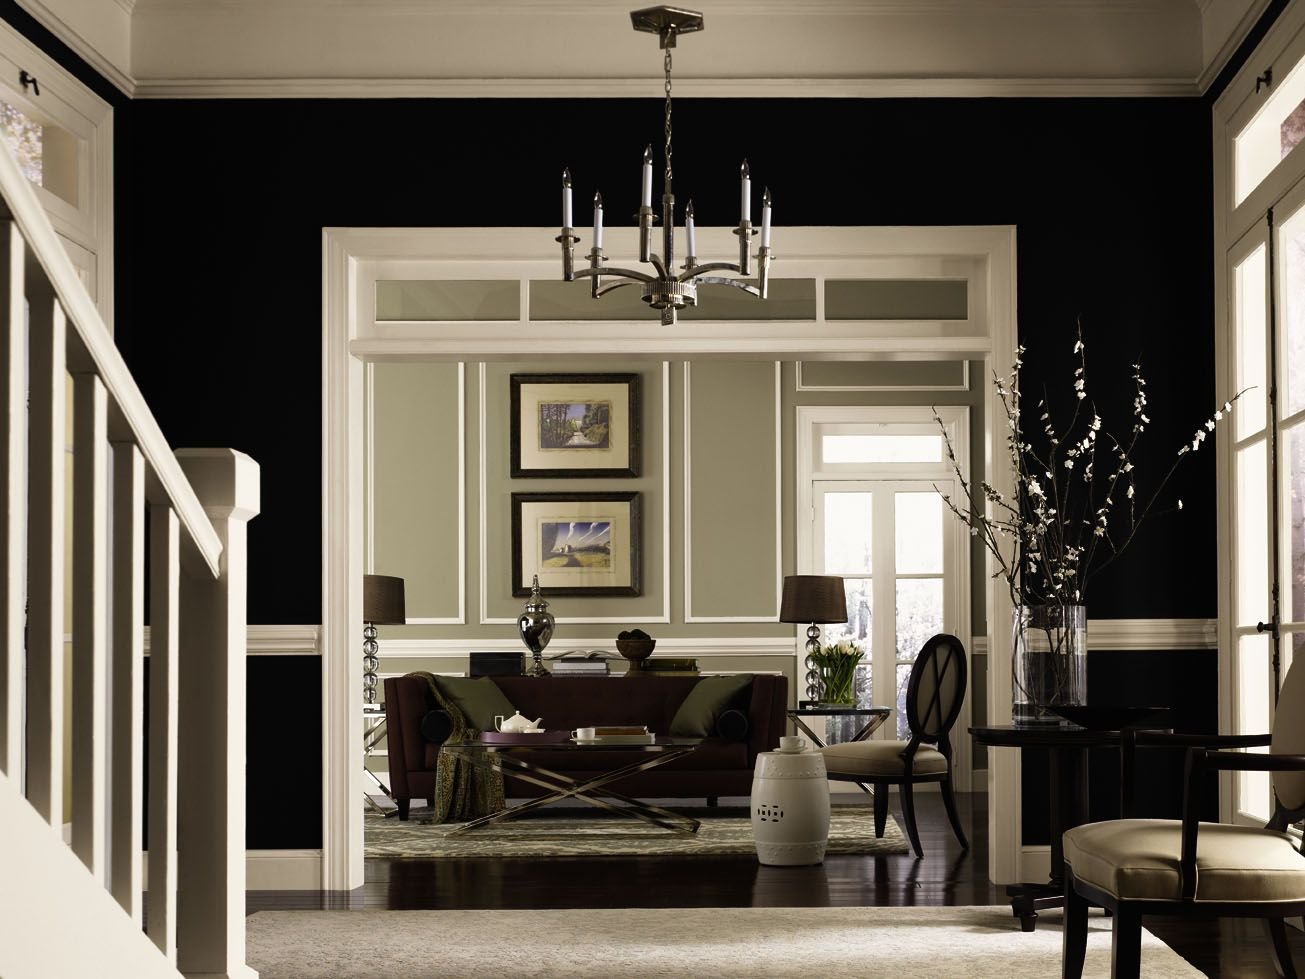 hgtv home by sherwin williams liveable luxe tricorn black sw 6258 gateway gray sw 7644. Black Bedroom Furniture Sets. Home Design Ideas